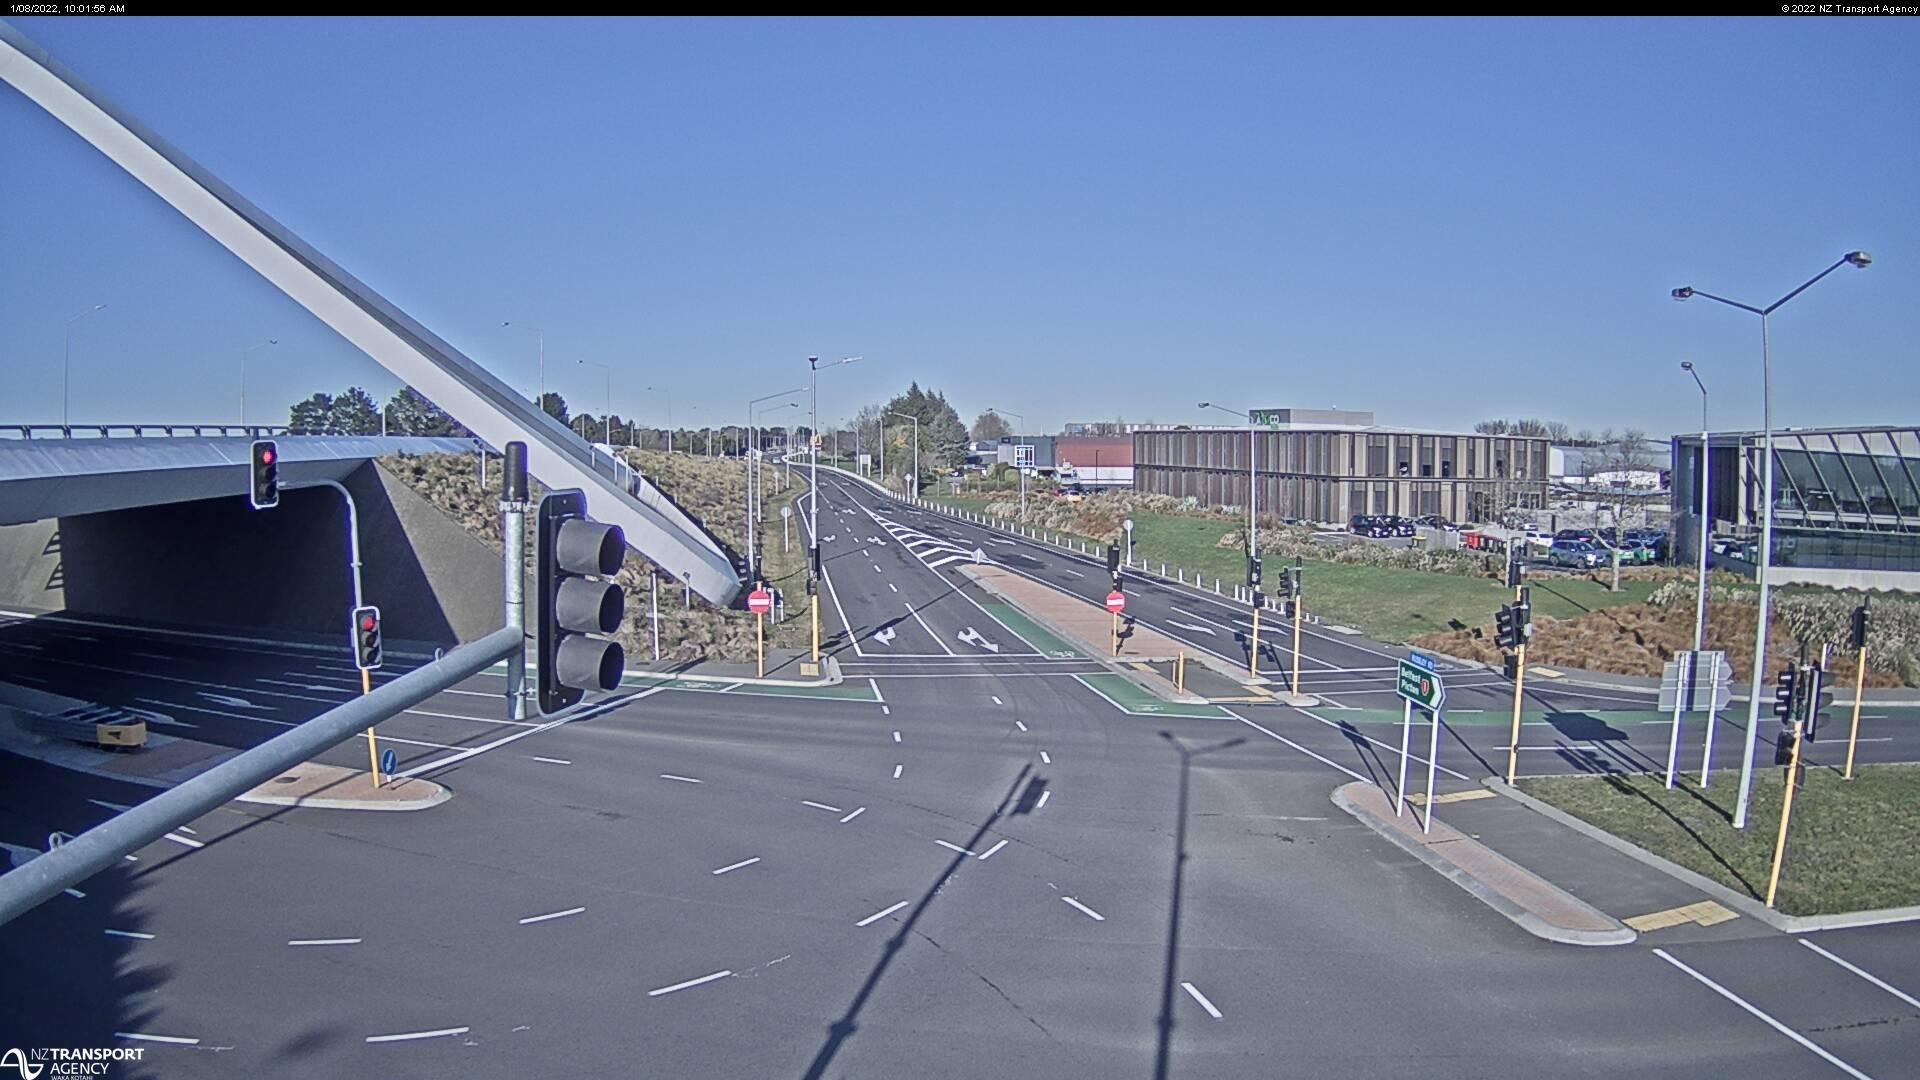 Webcam Harewood › North: SH1 Memorial Ave West, Christchu